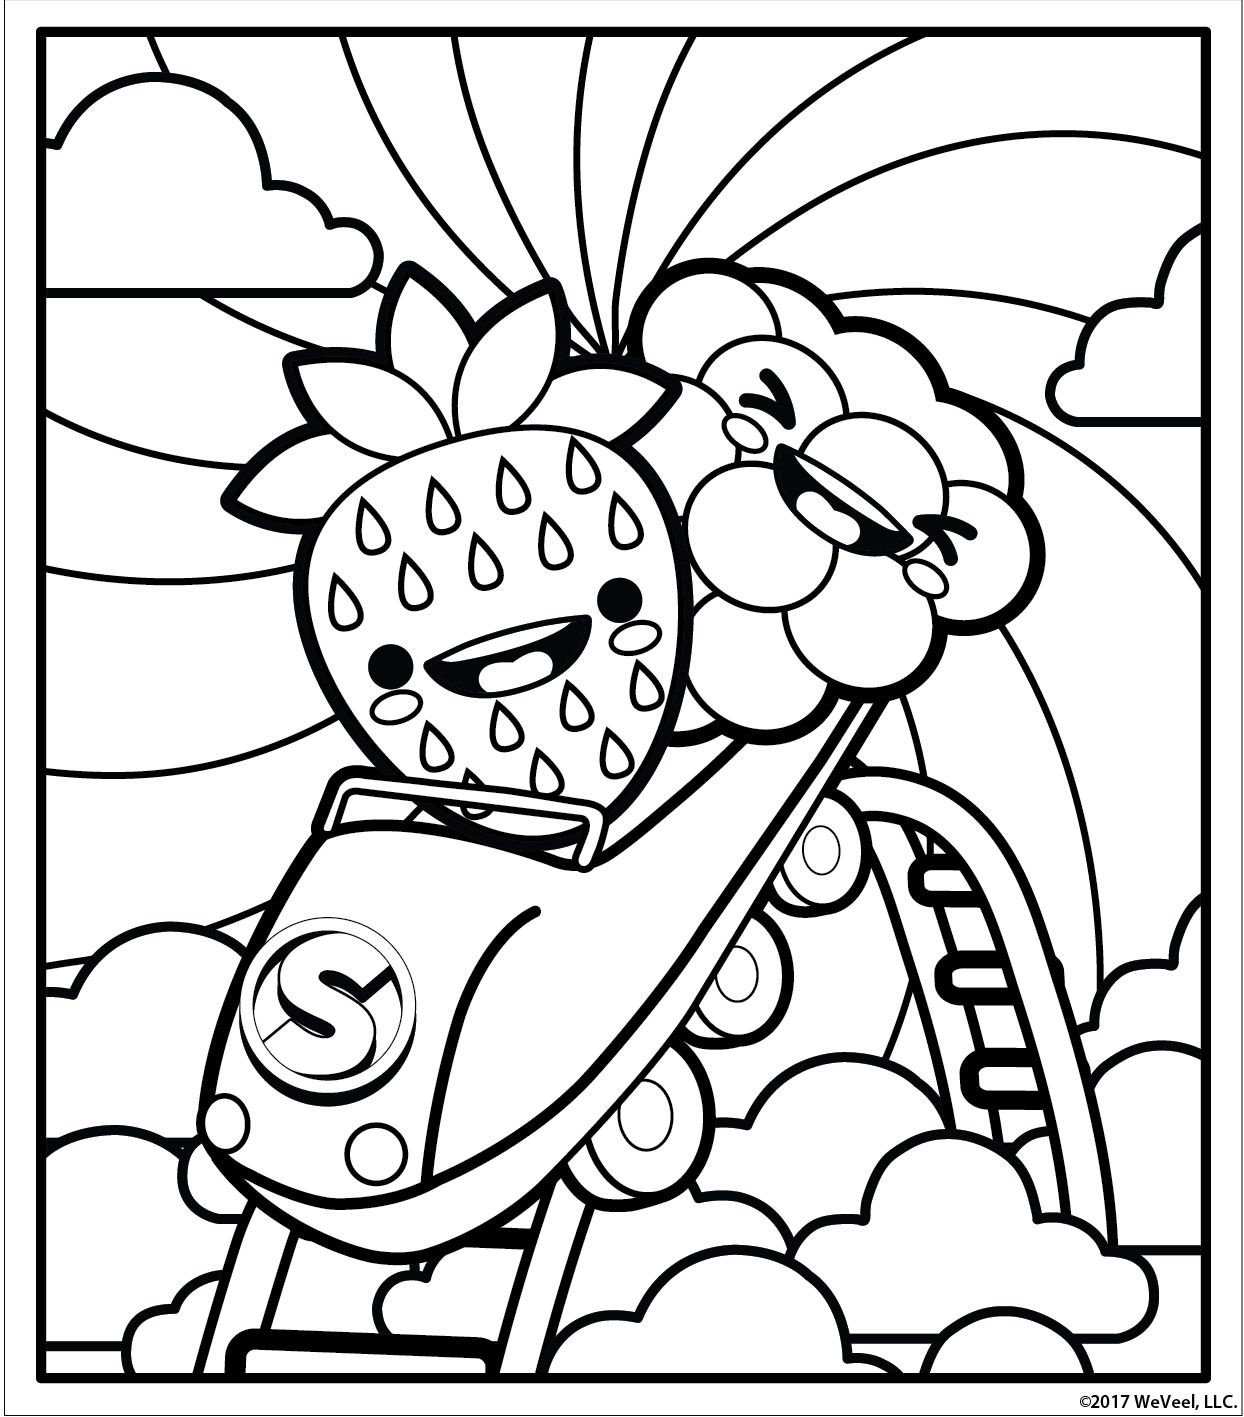 Free Printable Coloring Pages At Scentos Com Cute Girl Coloring Pages To Download And Print For Free Kids Coloring Pages Monster Coloring Pages Coloring Pages